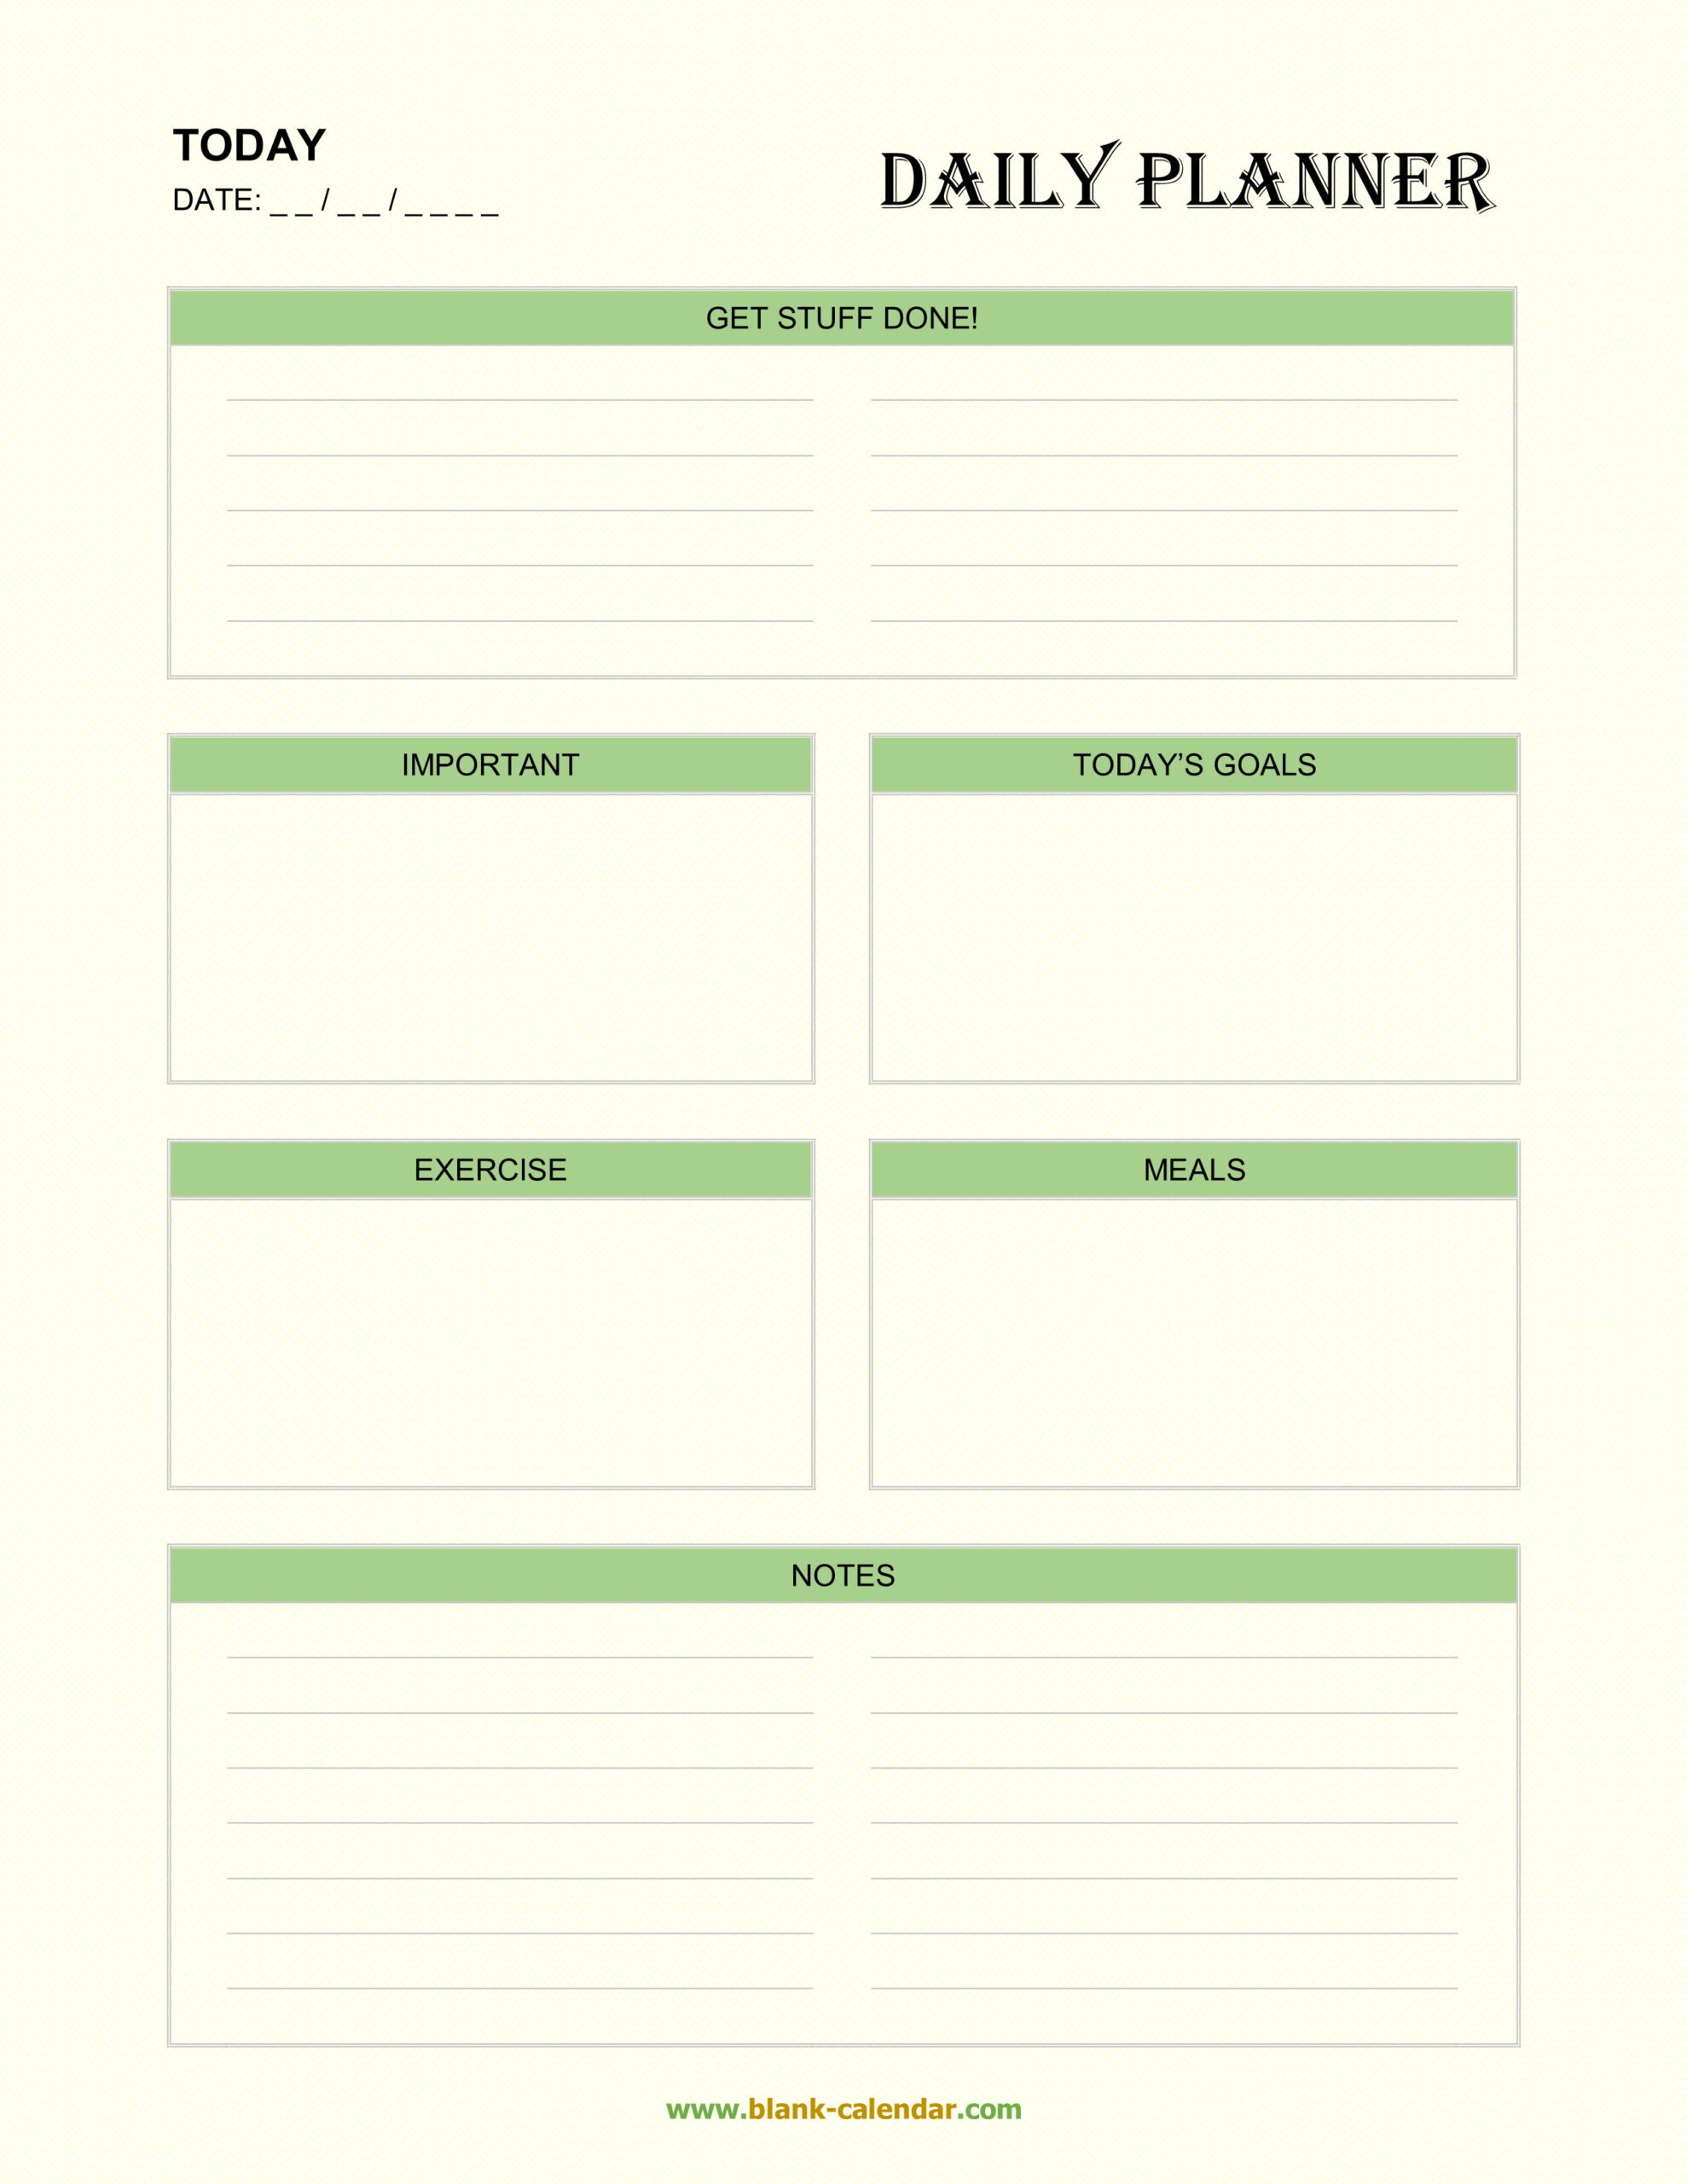 Daily Planner Templates (Word, Excel, Pdf)  Printable Editable Daily Schedule Template